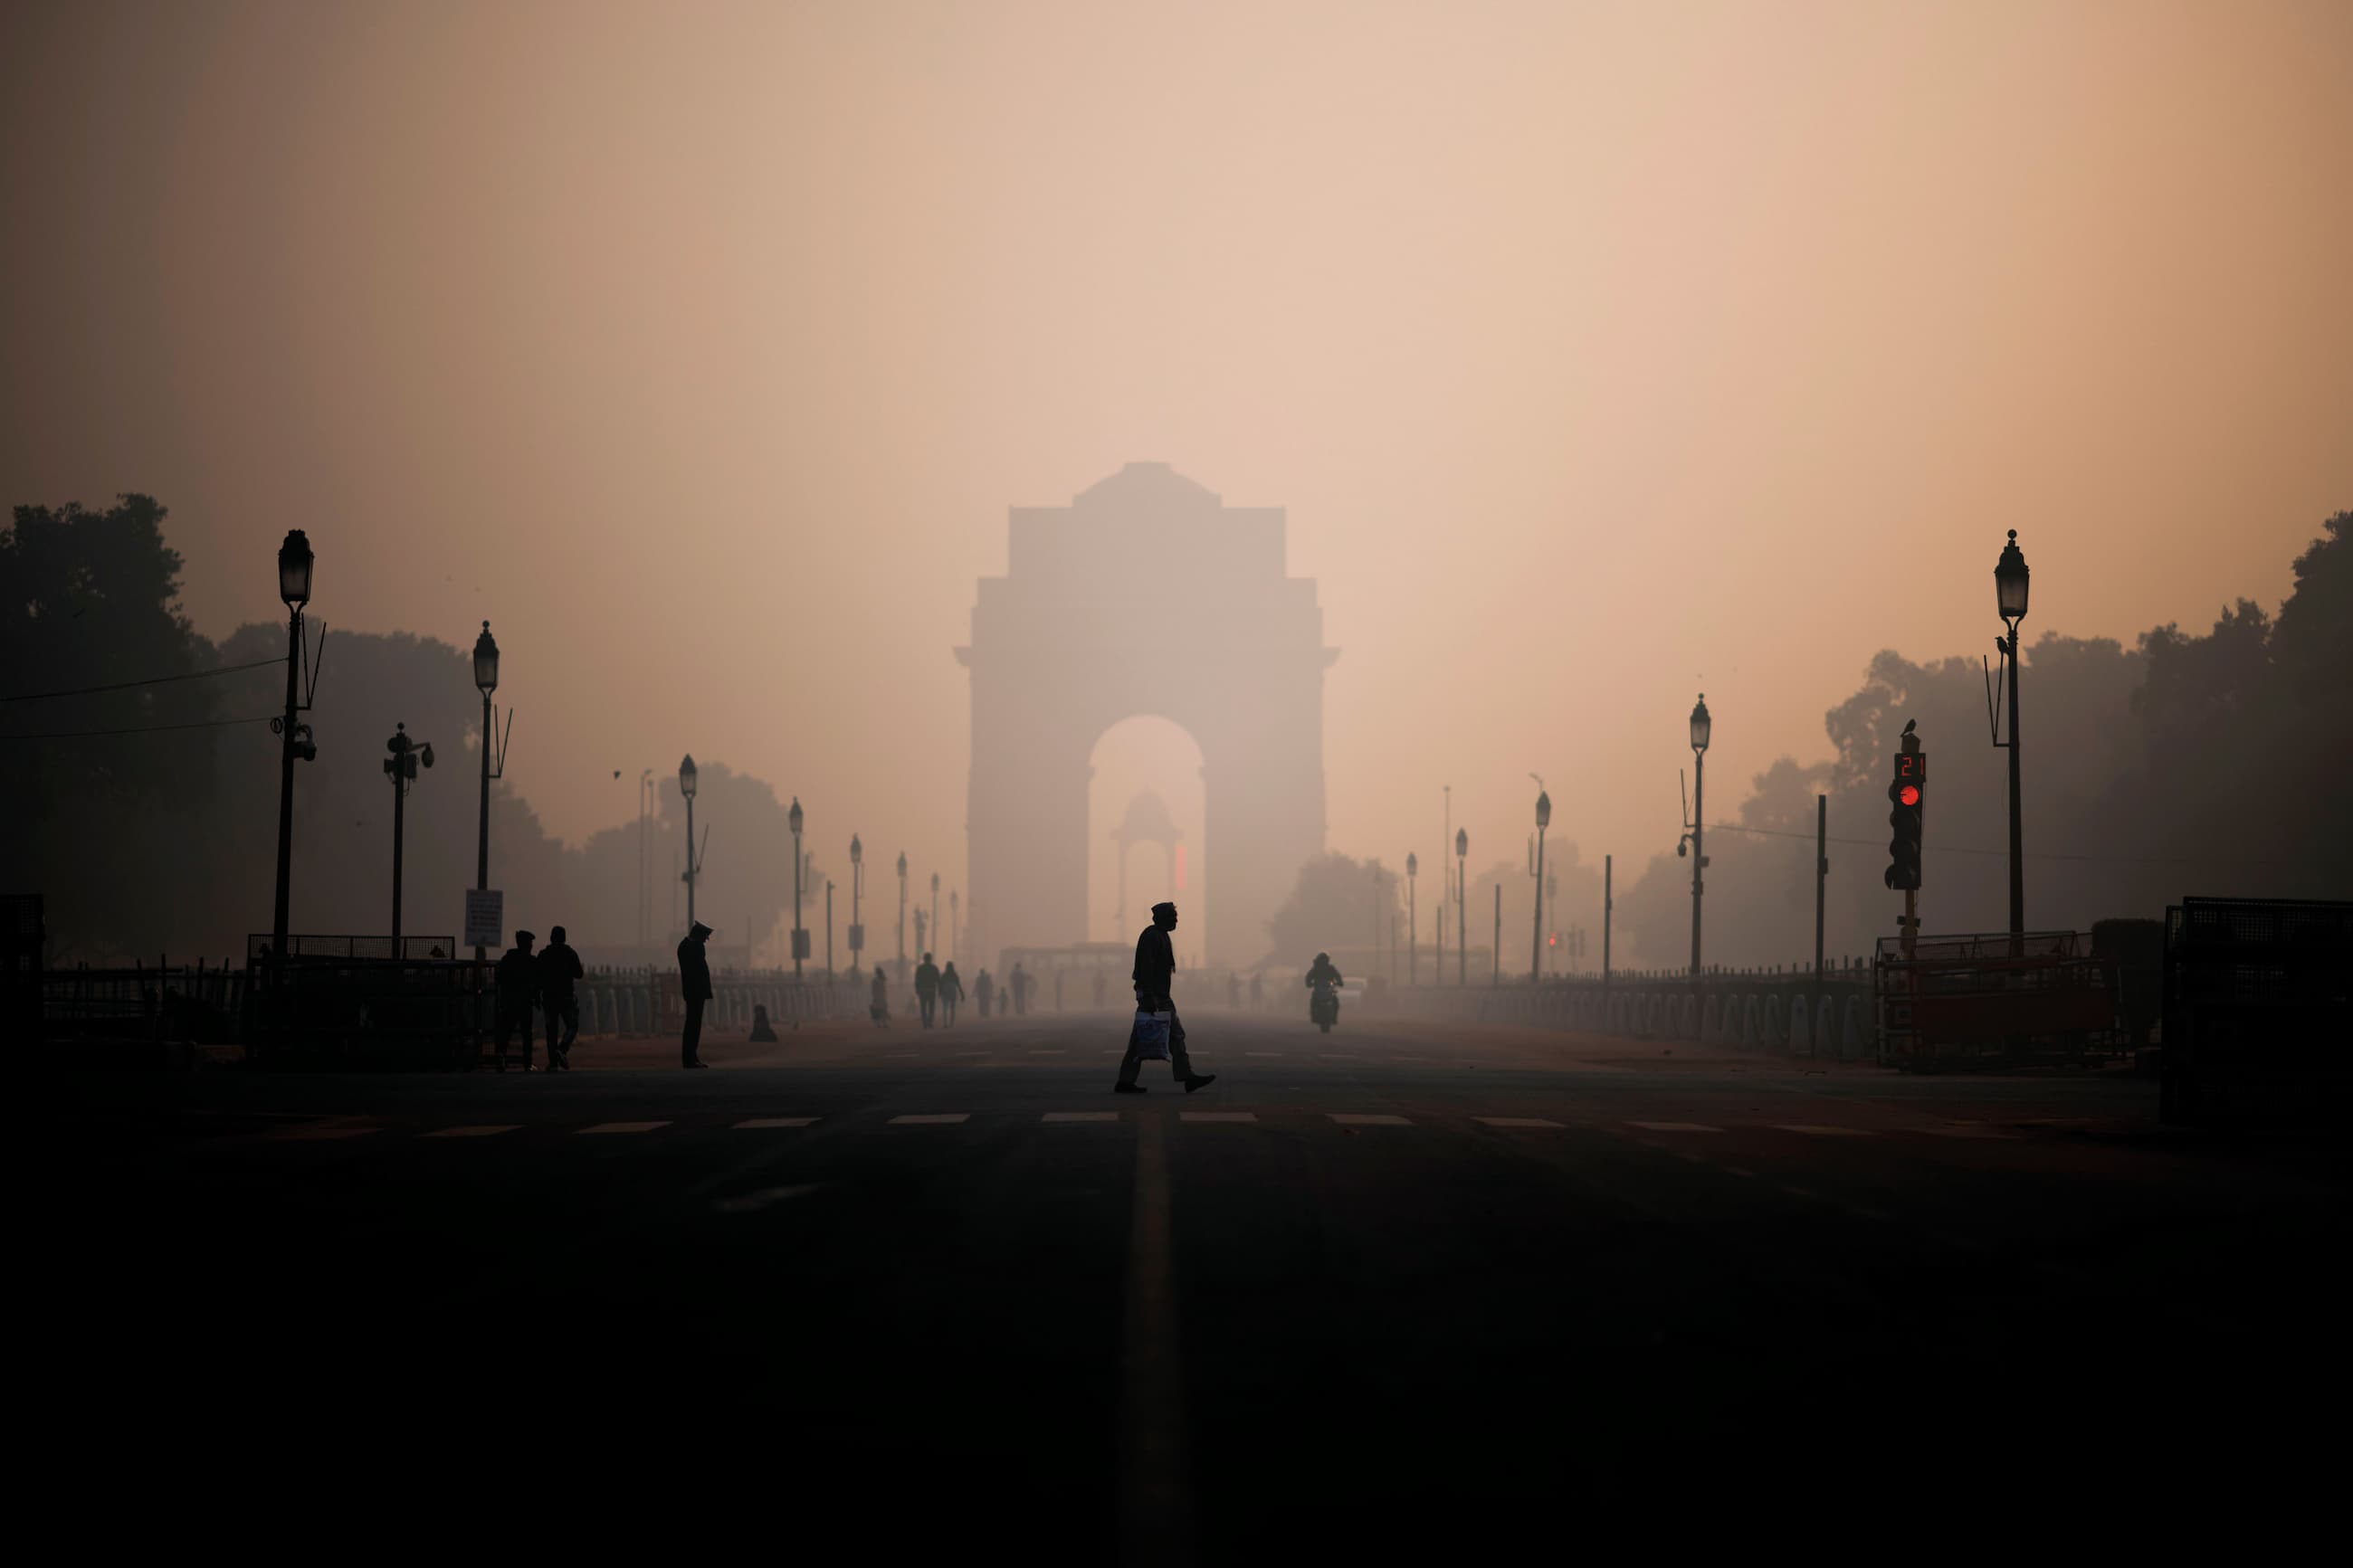 Heavy smog conditions at the India Gate, New Delhi, India, on December 6, 2019.